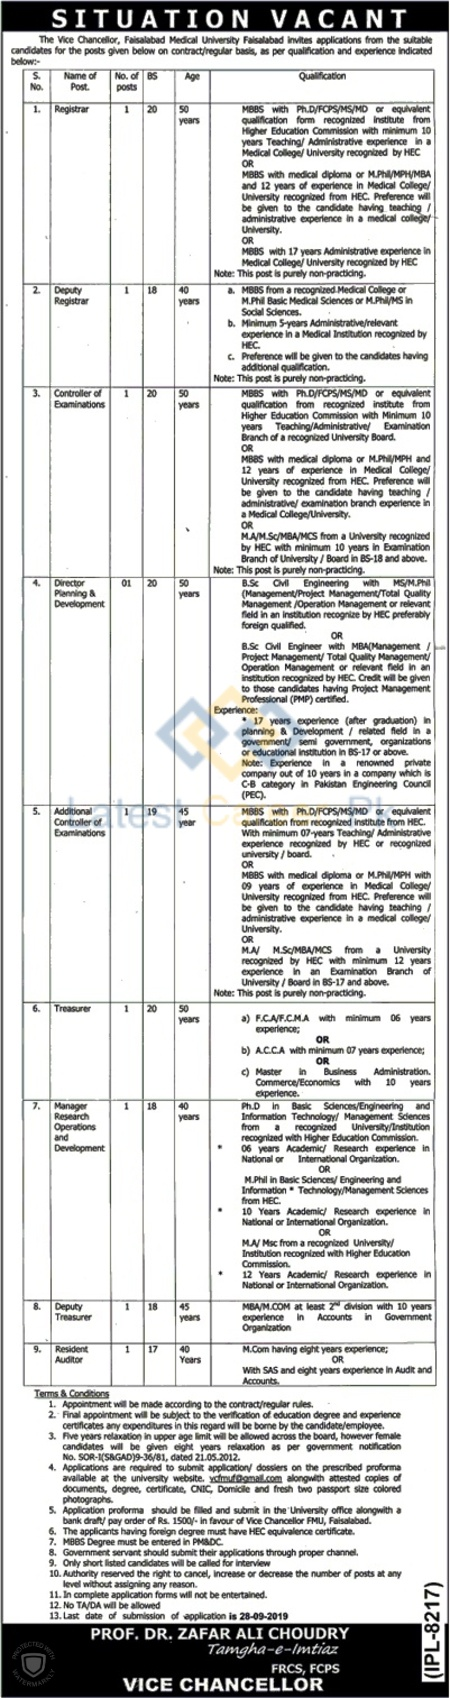 Faisalabad-Medical-University-FMU-Faisalabad-Jobs-10-Sep-2019